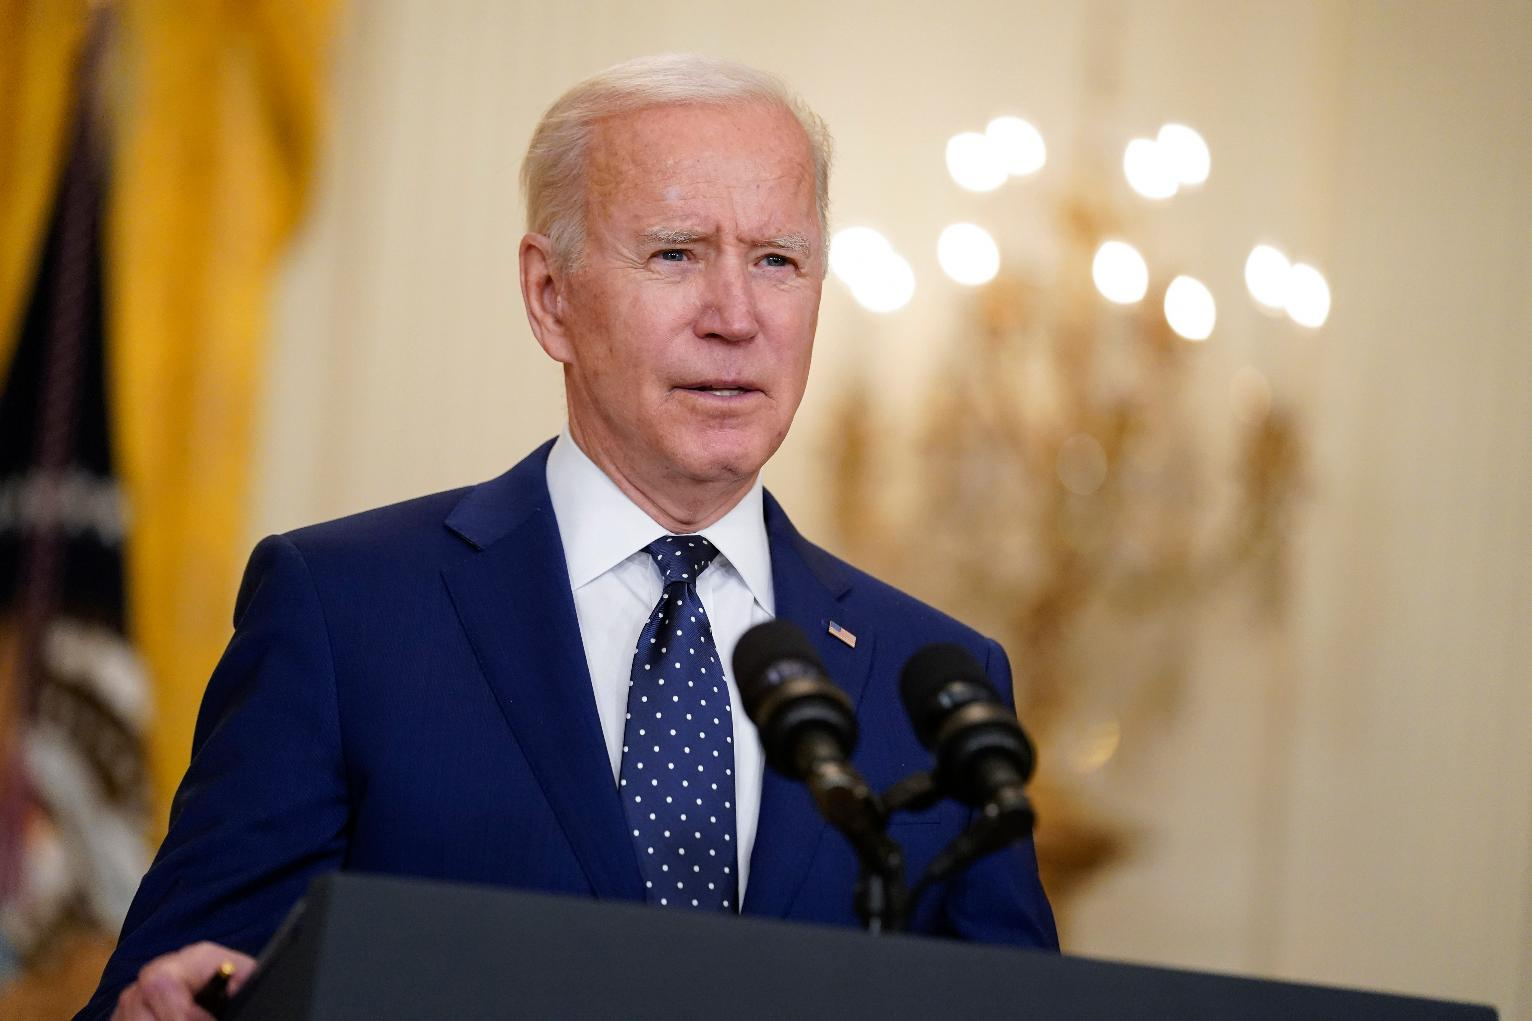 Biden reacts to Chauvin's guilty verdict, calls for no violence